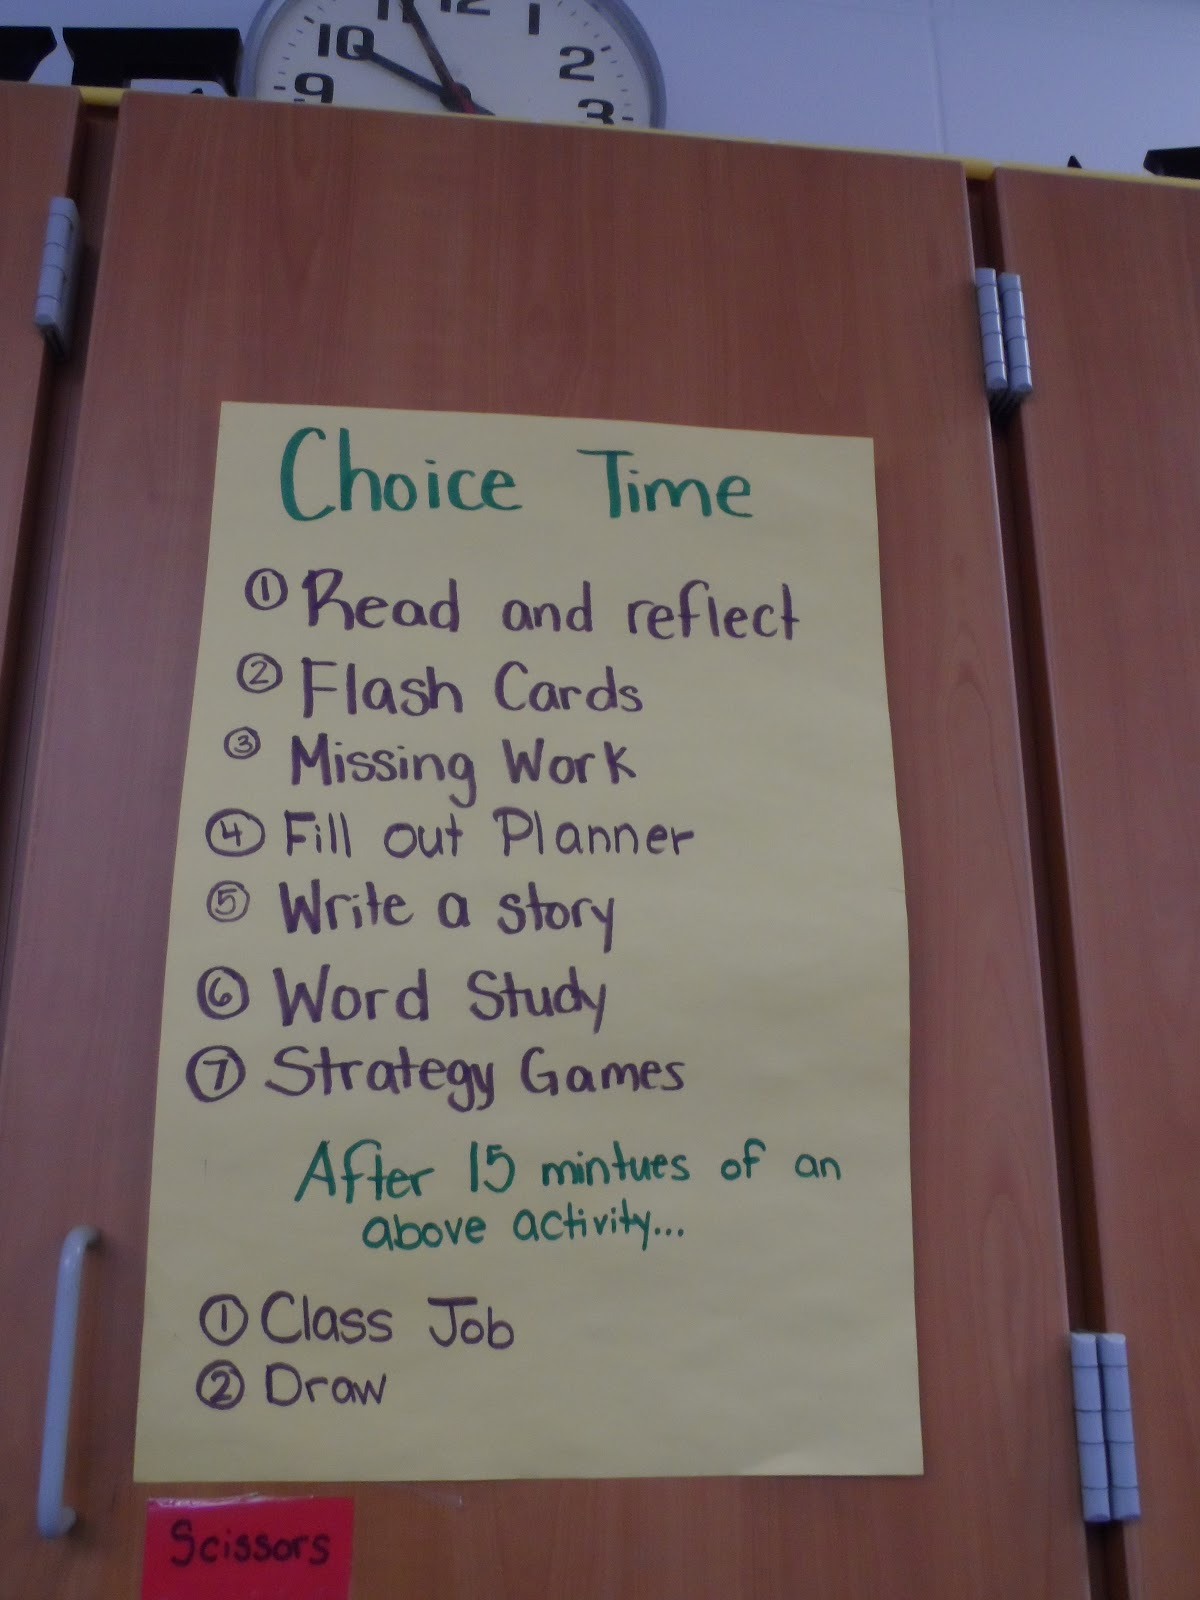 Classroom Management Ideas For 5th Grade ~ Th grade classroom management ideas pixshark